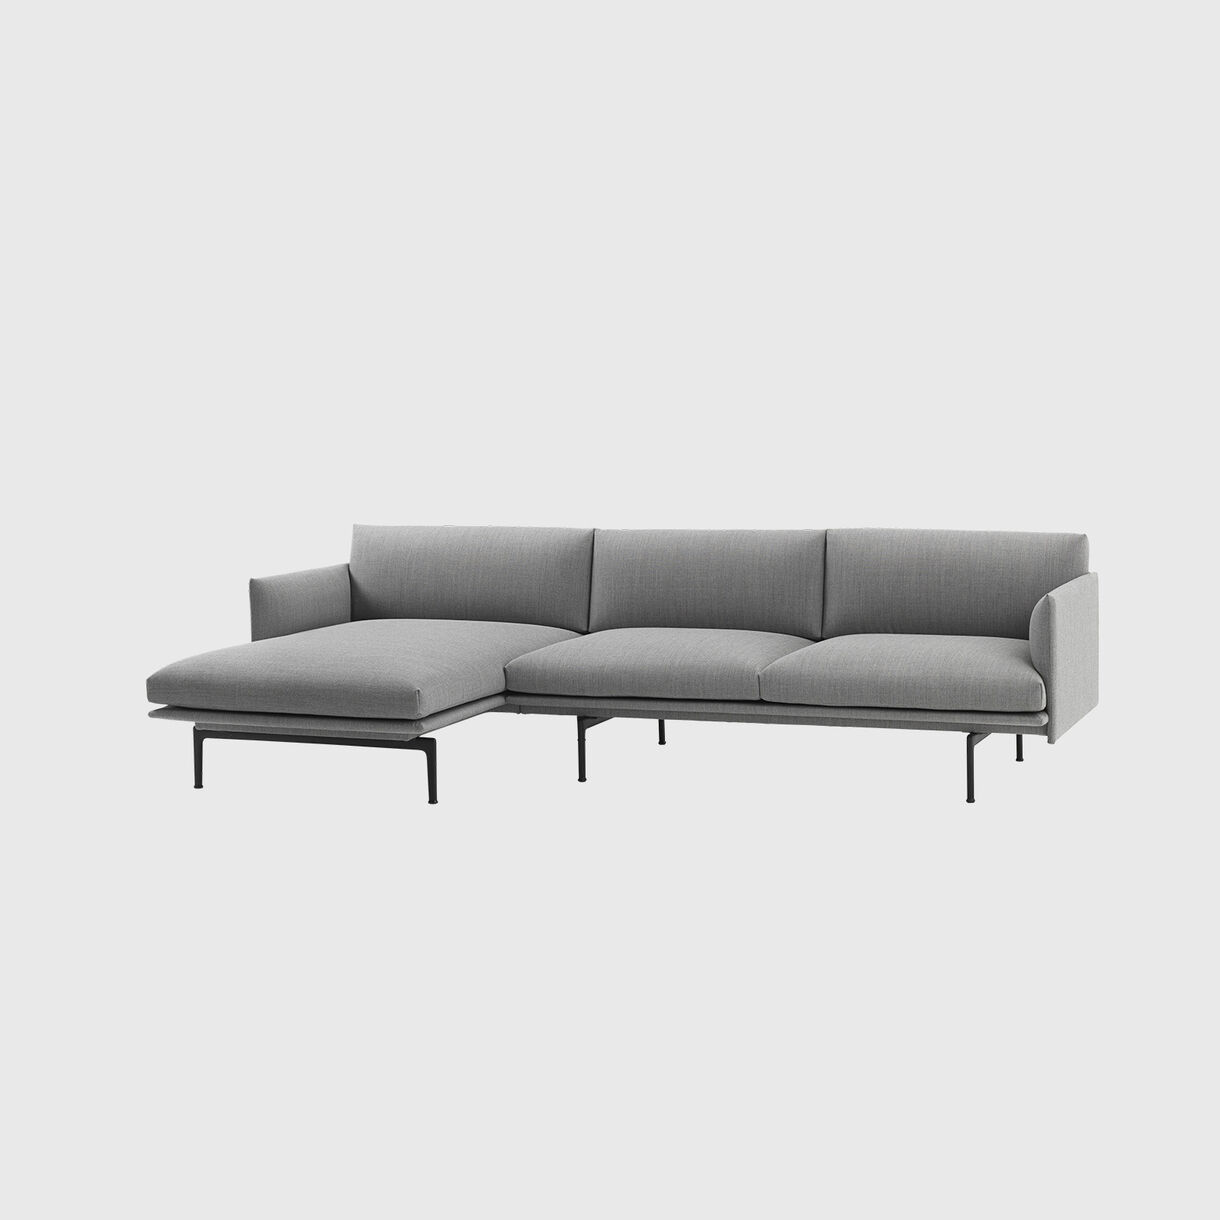 Outline Chaise Sofa, Left, Vancouver 14